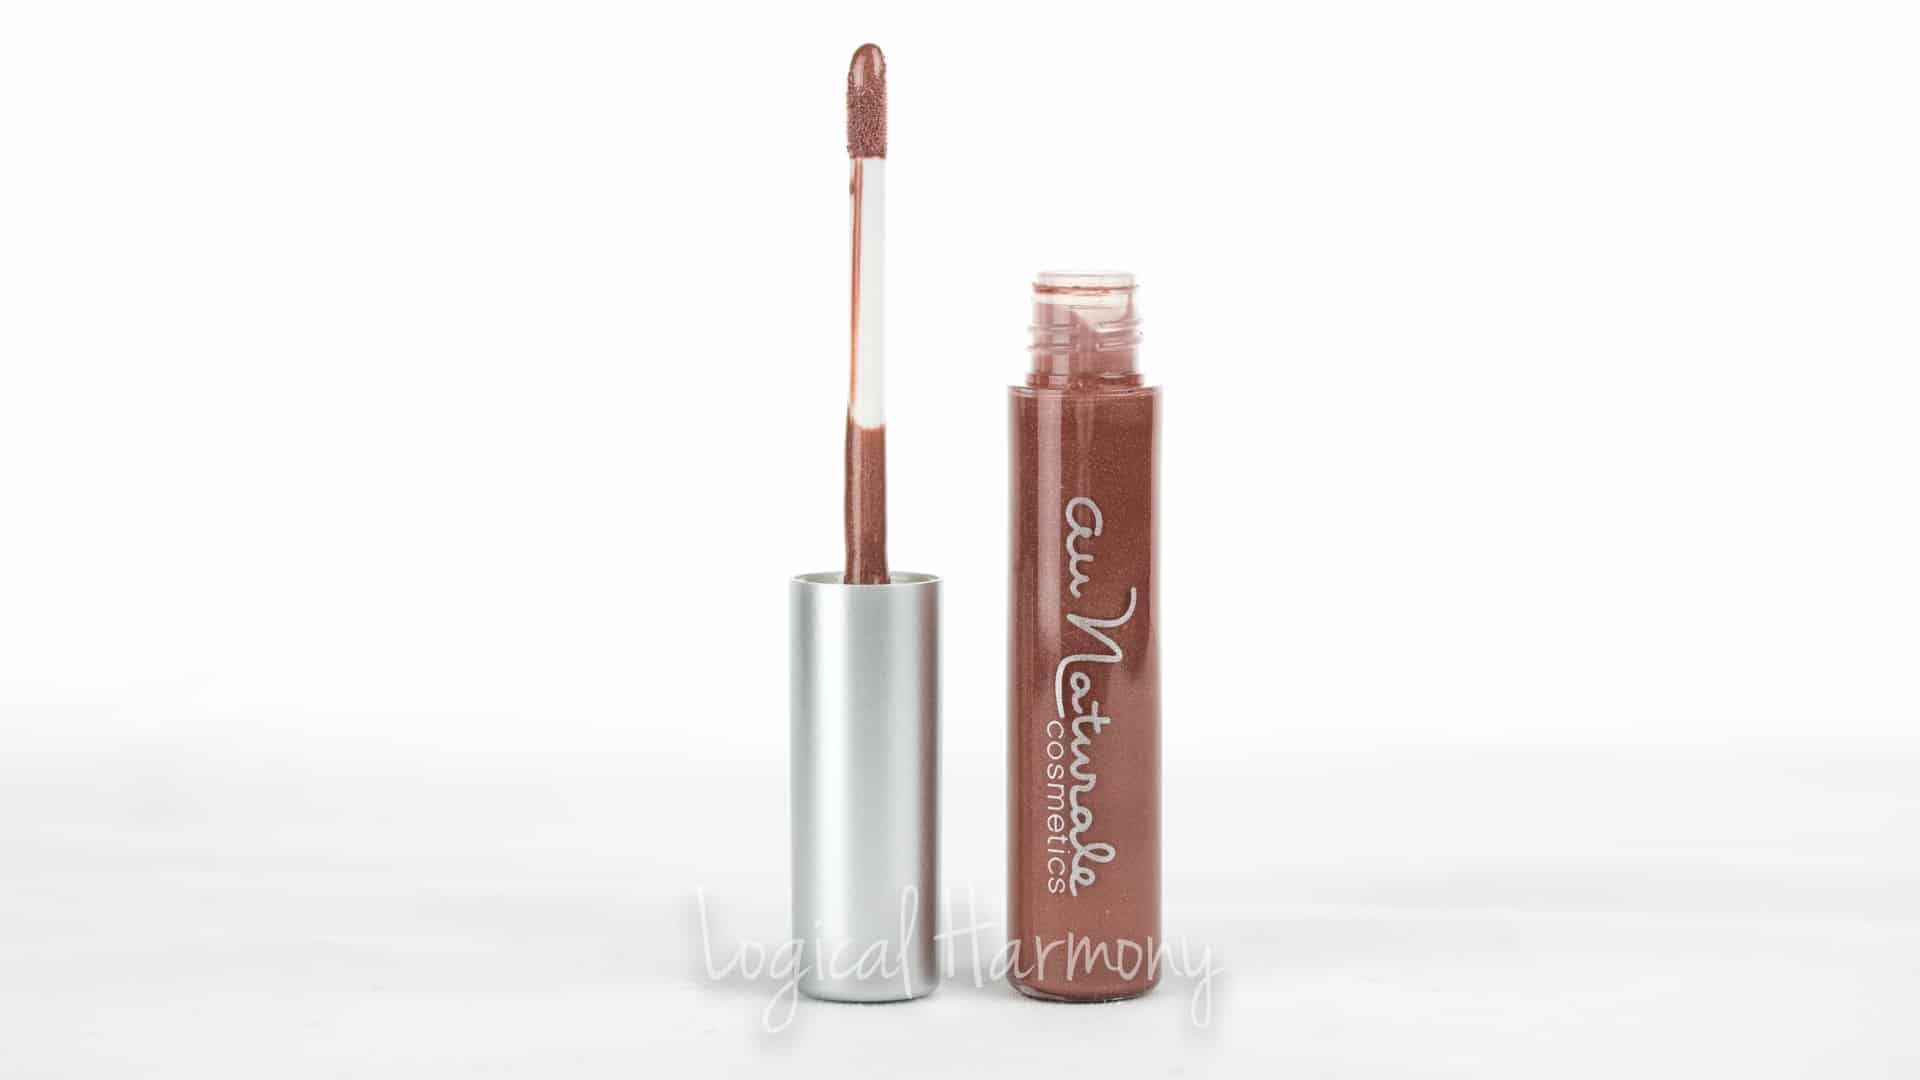 Au Naturale Lip Gloss in Nudist Review